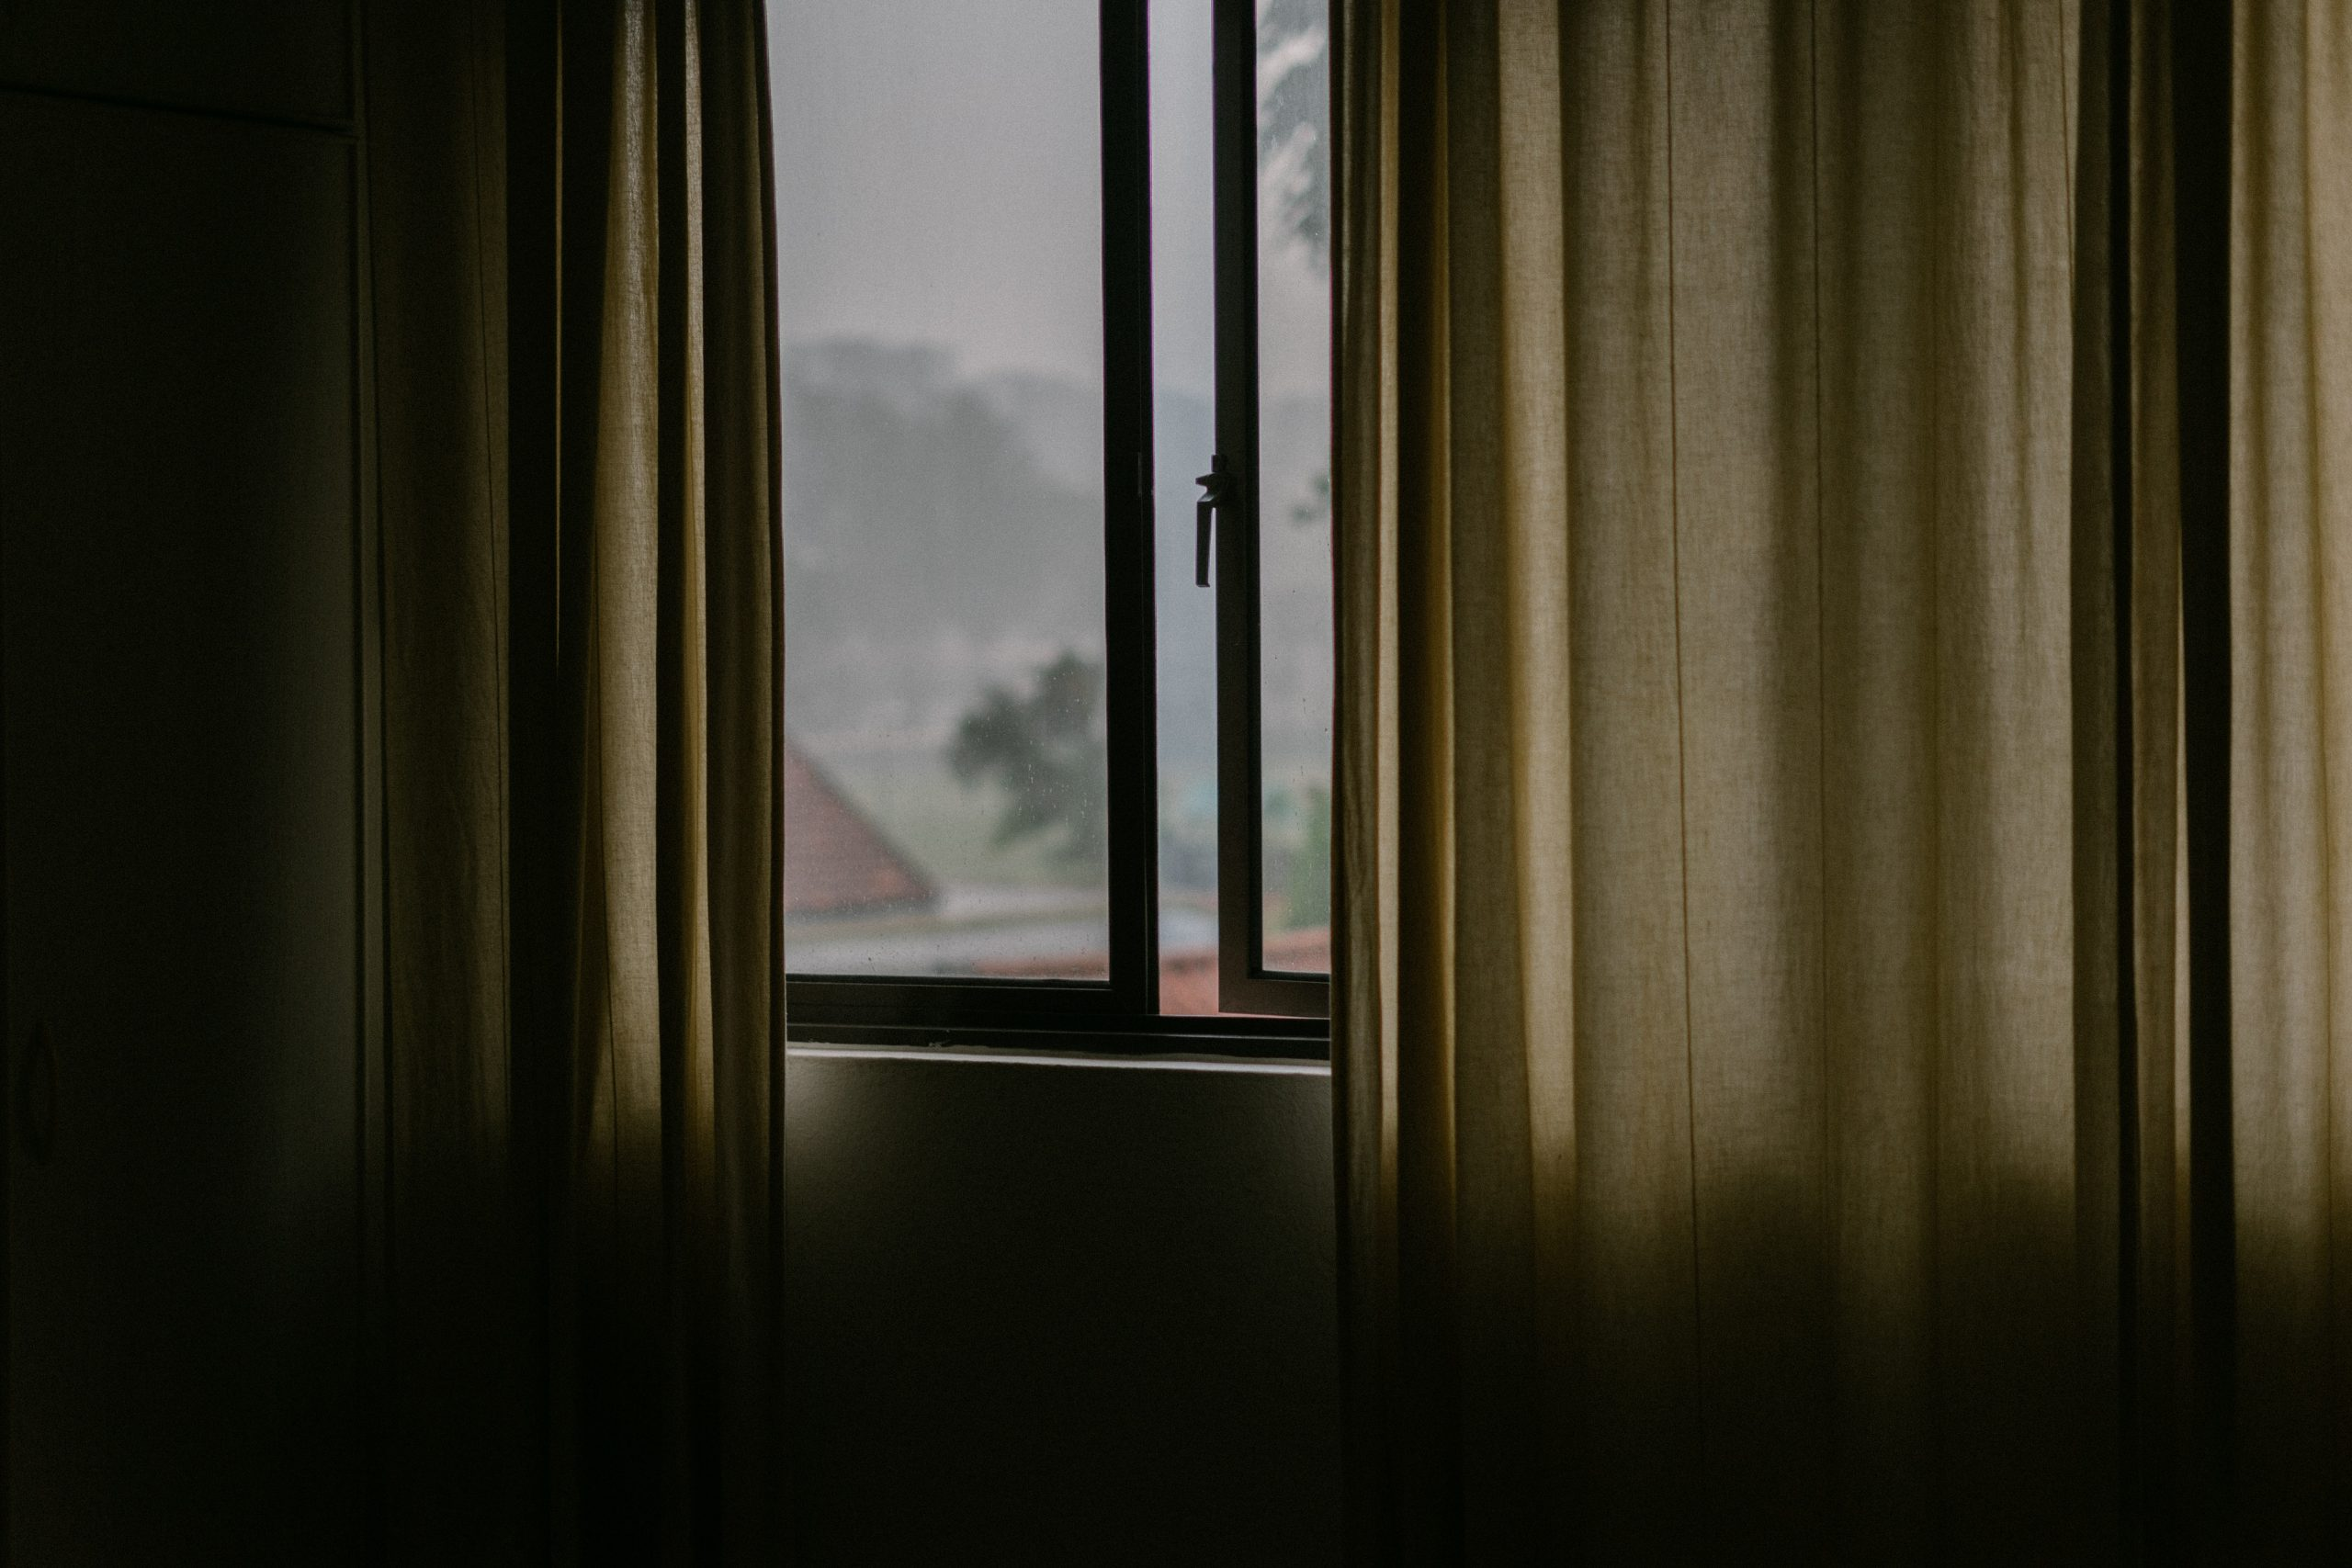 Featured image: Throwing Open the Windows: The Need for Ventilation Improvements as Part of Covid-19 Outbreak Control in Aotearoa